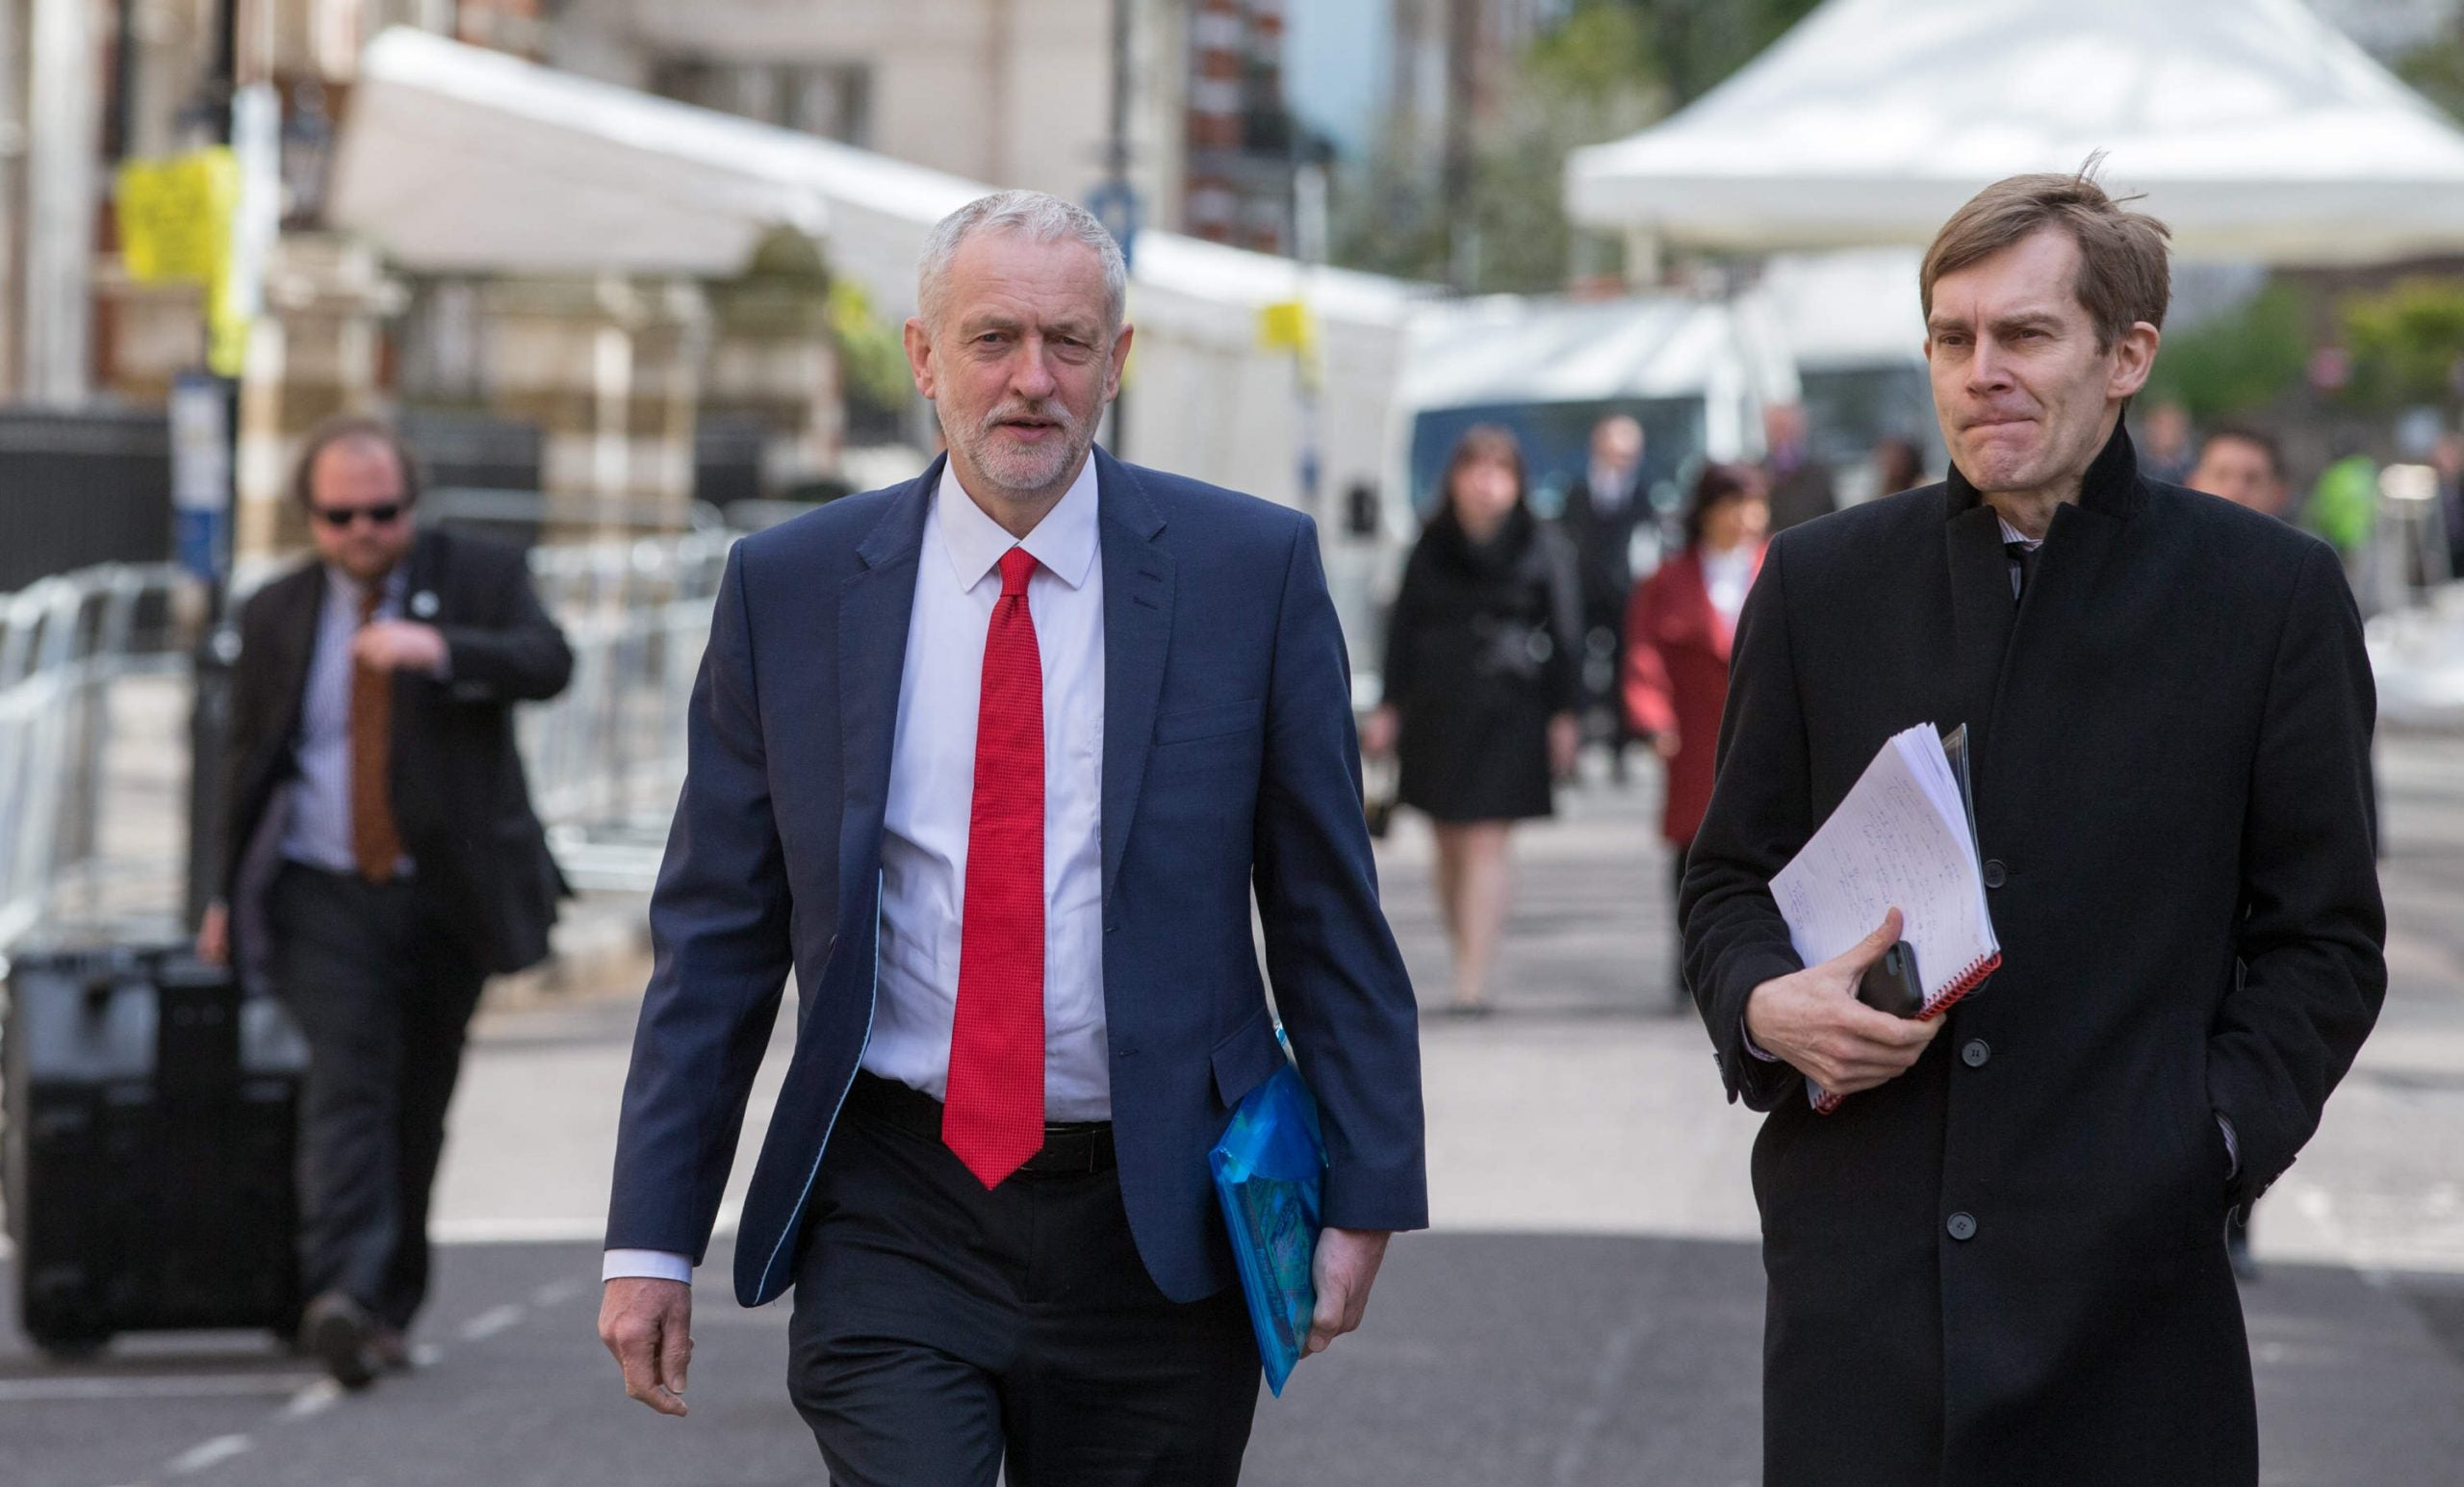 Jeremy Corbyn appoints Shami Chakrabarti to lead inquiry into Labour and antisemitism